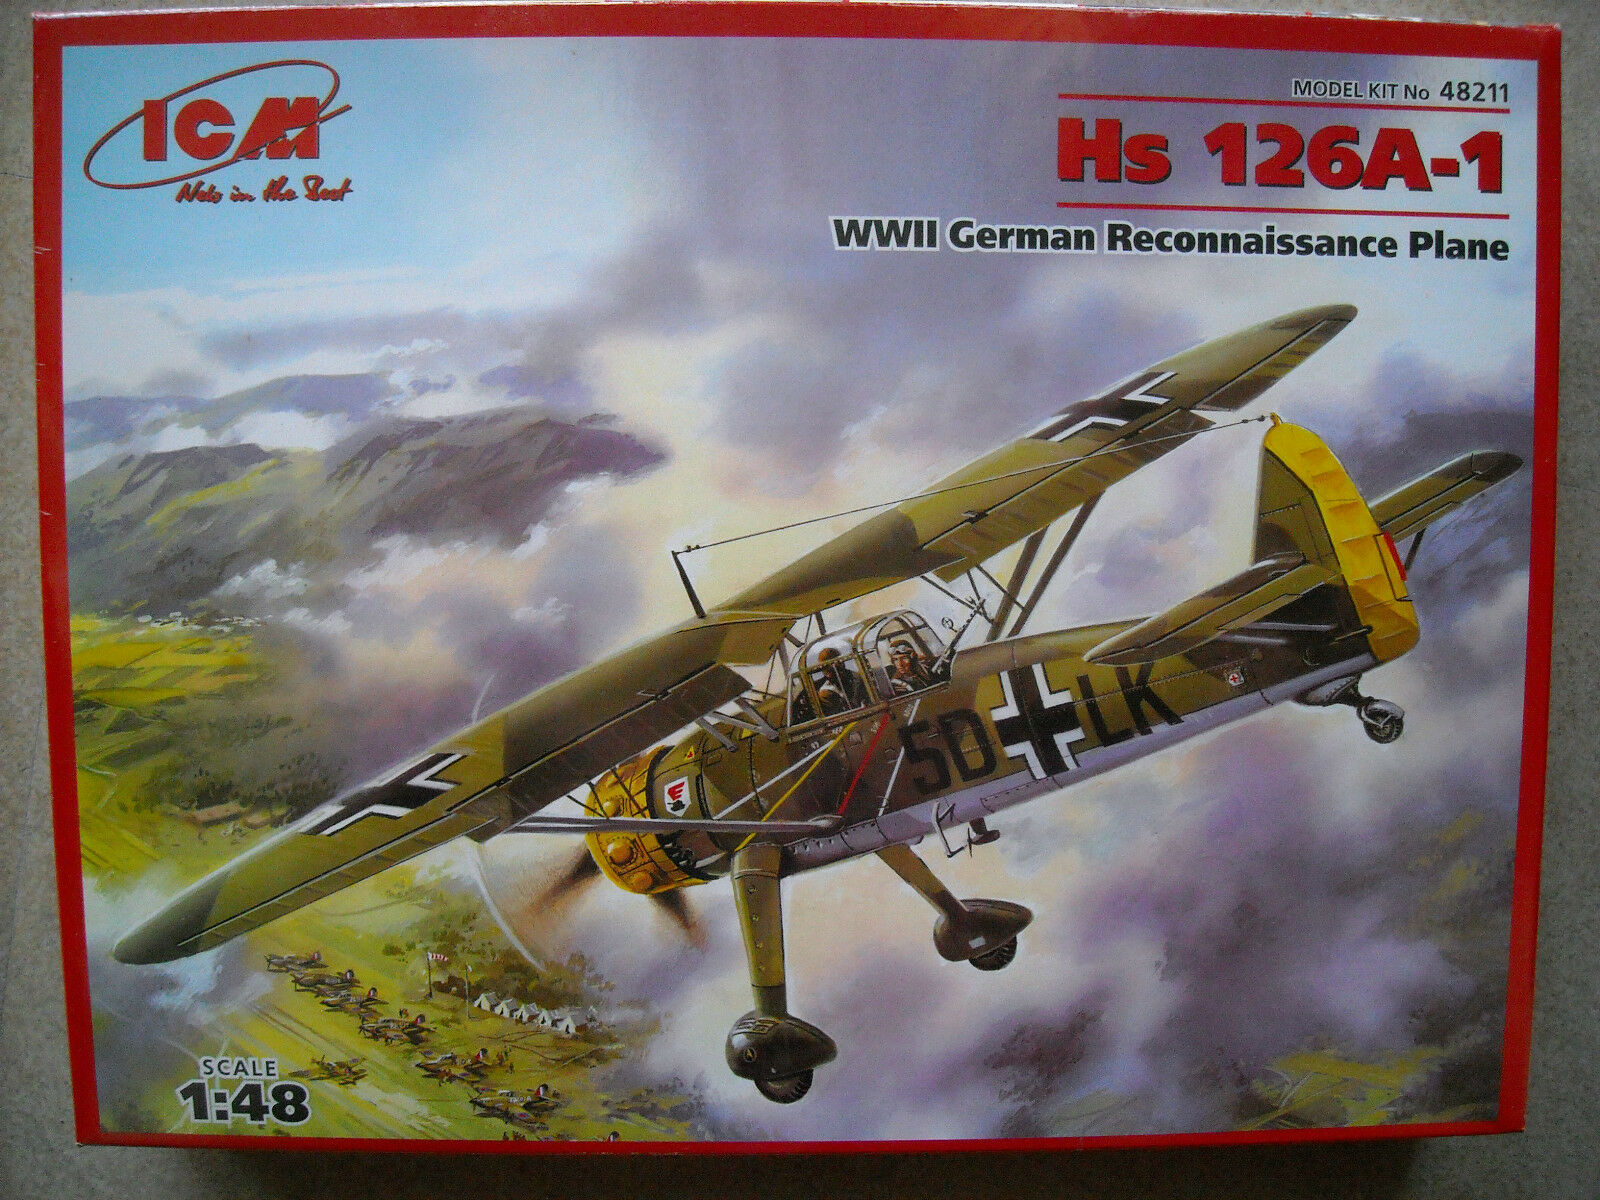 ICM 1 48 Hs 126A-1 WWII German Recon Plane